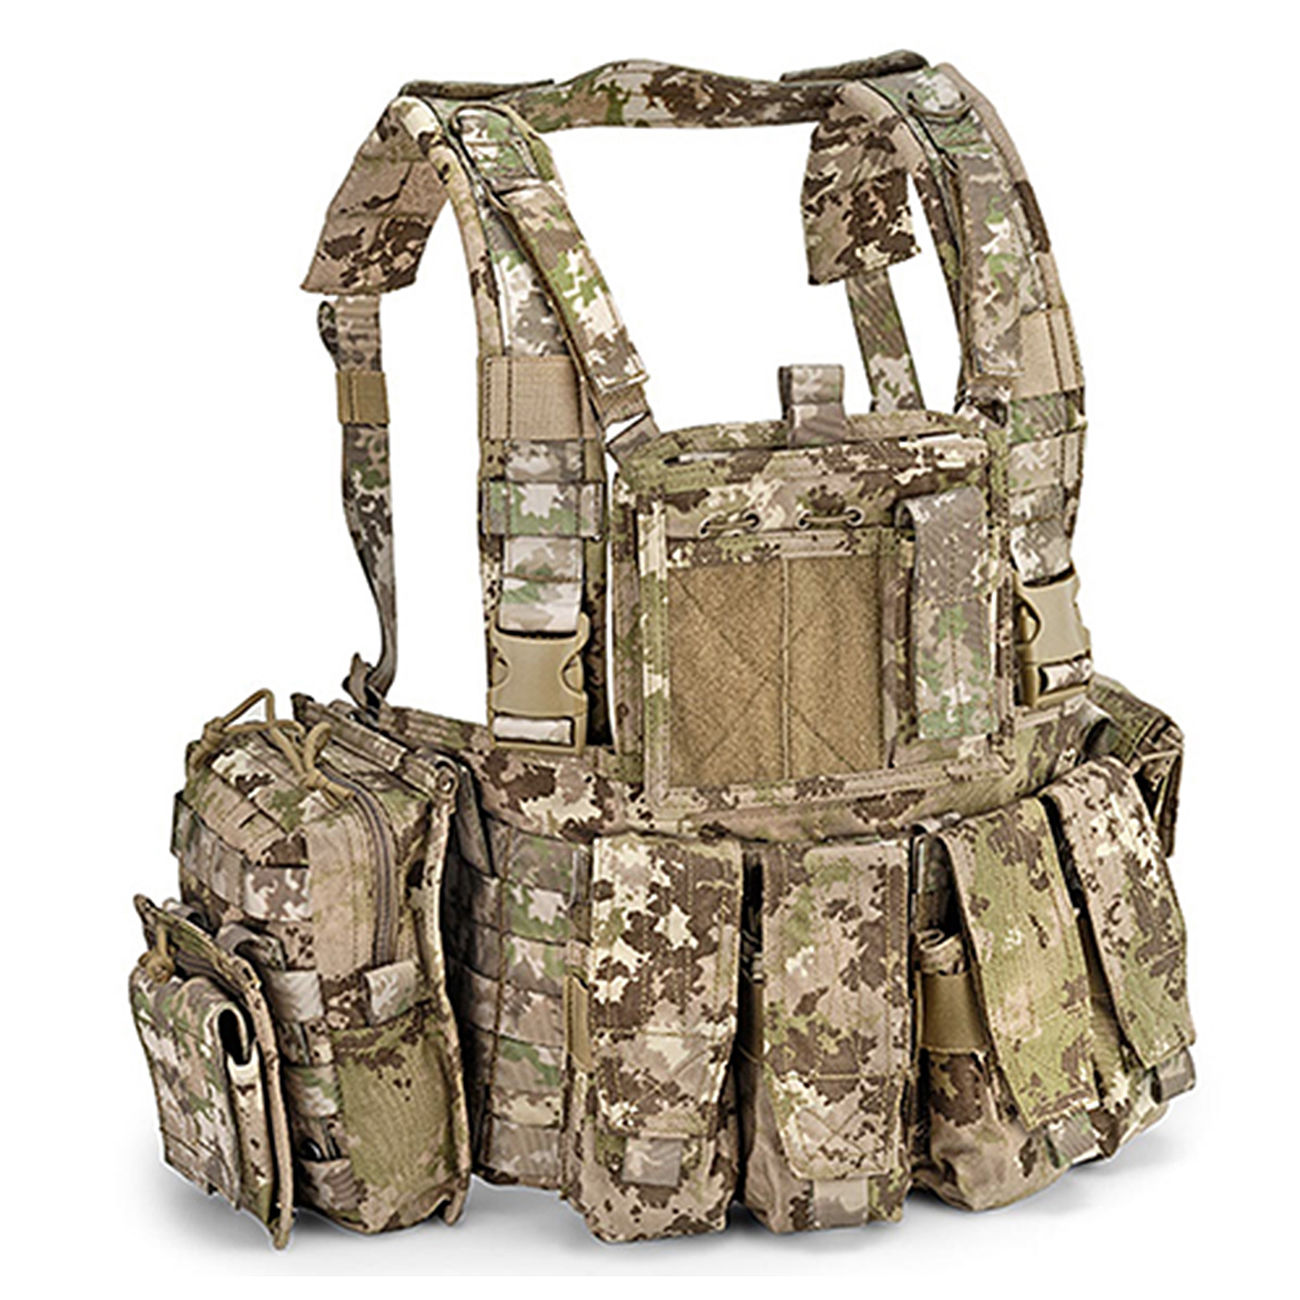 Defcon 5 Chest Rig Brustgeschirr Multiland Camo 0